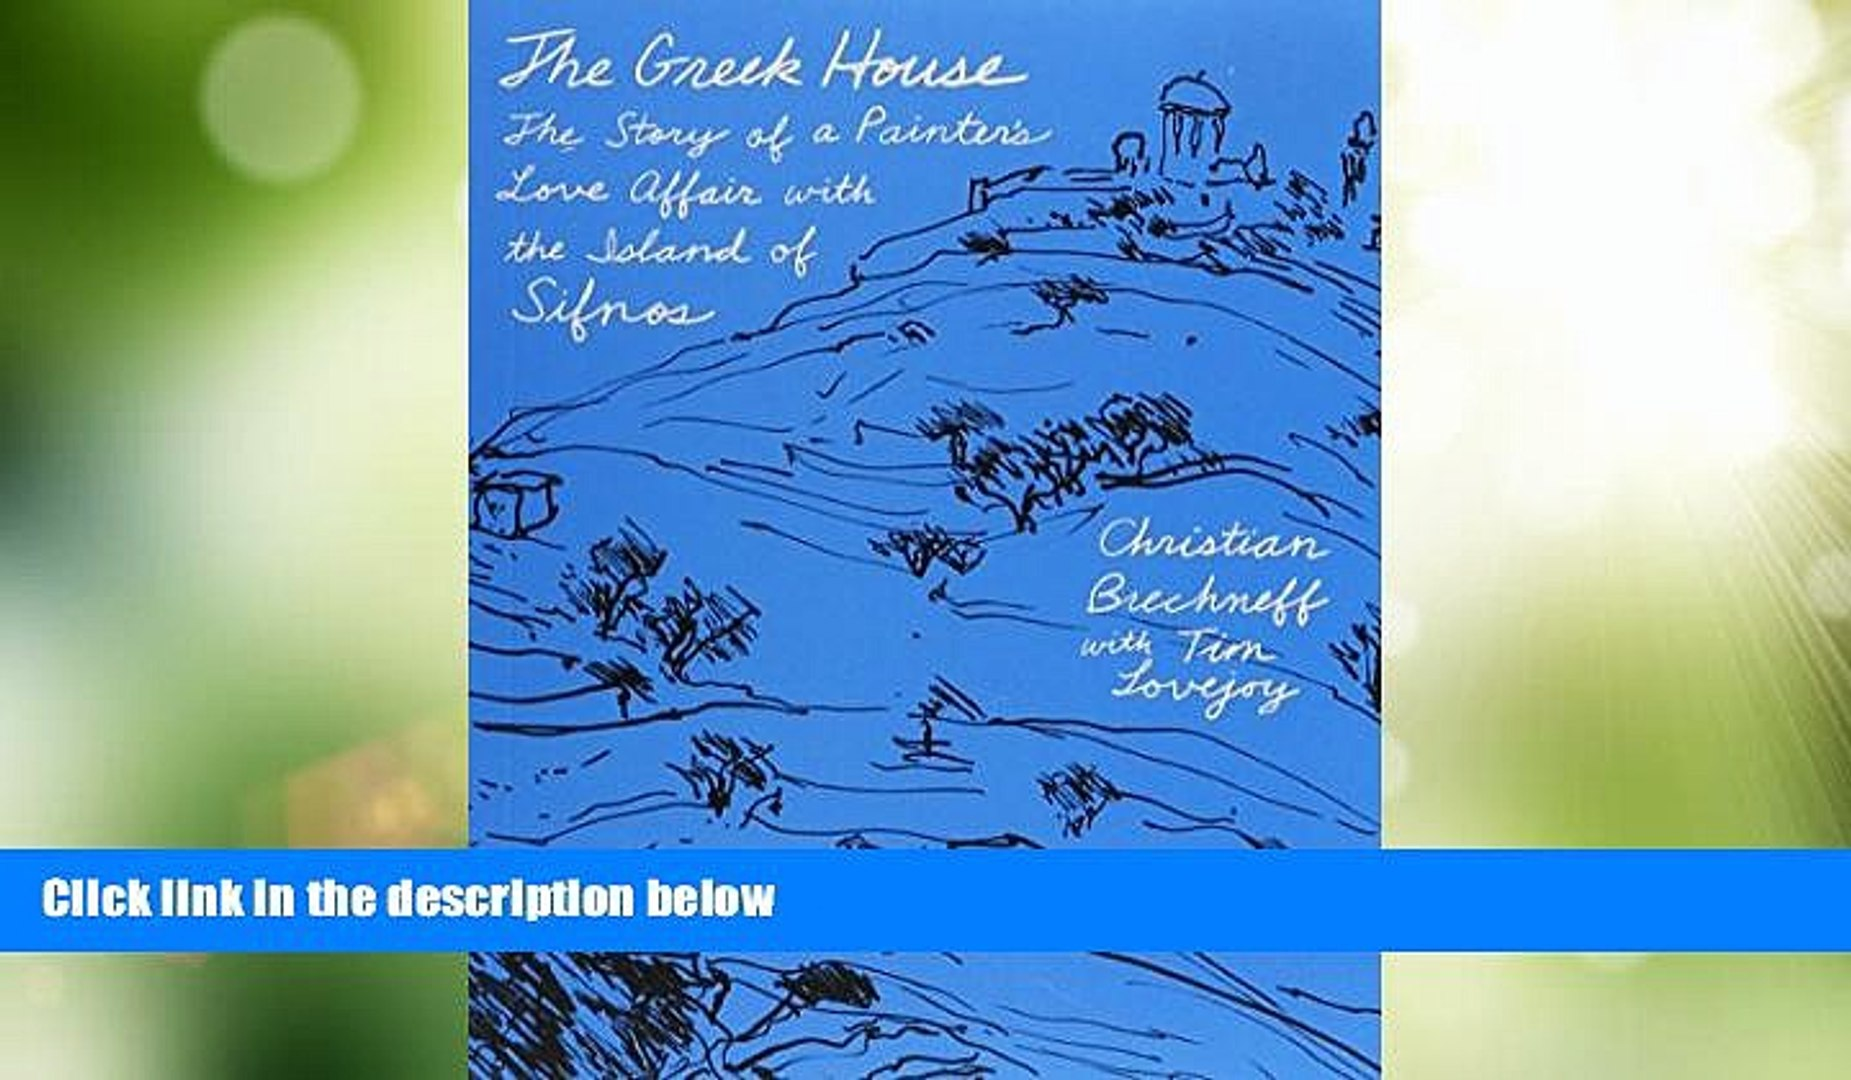 Deals in Books  The Greek House: The Story of a Painter s Love Affair with the Island of Sifnos